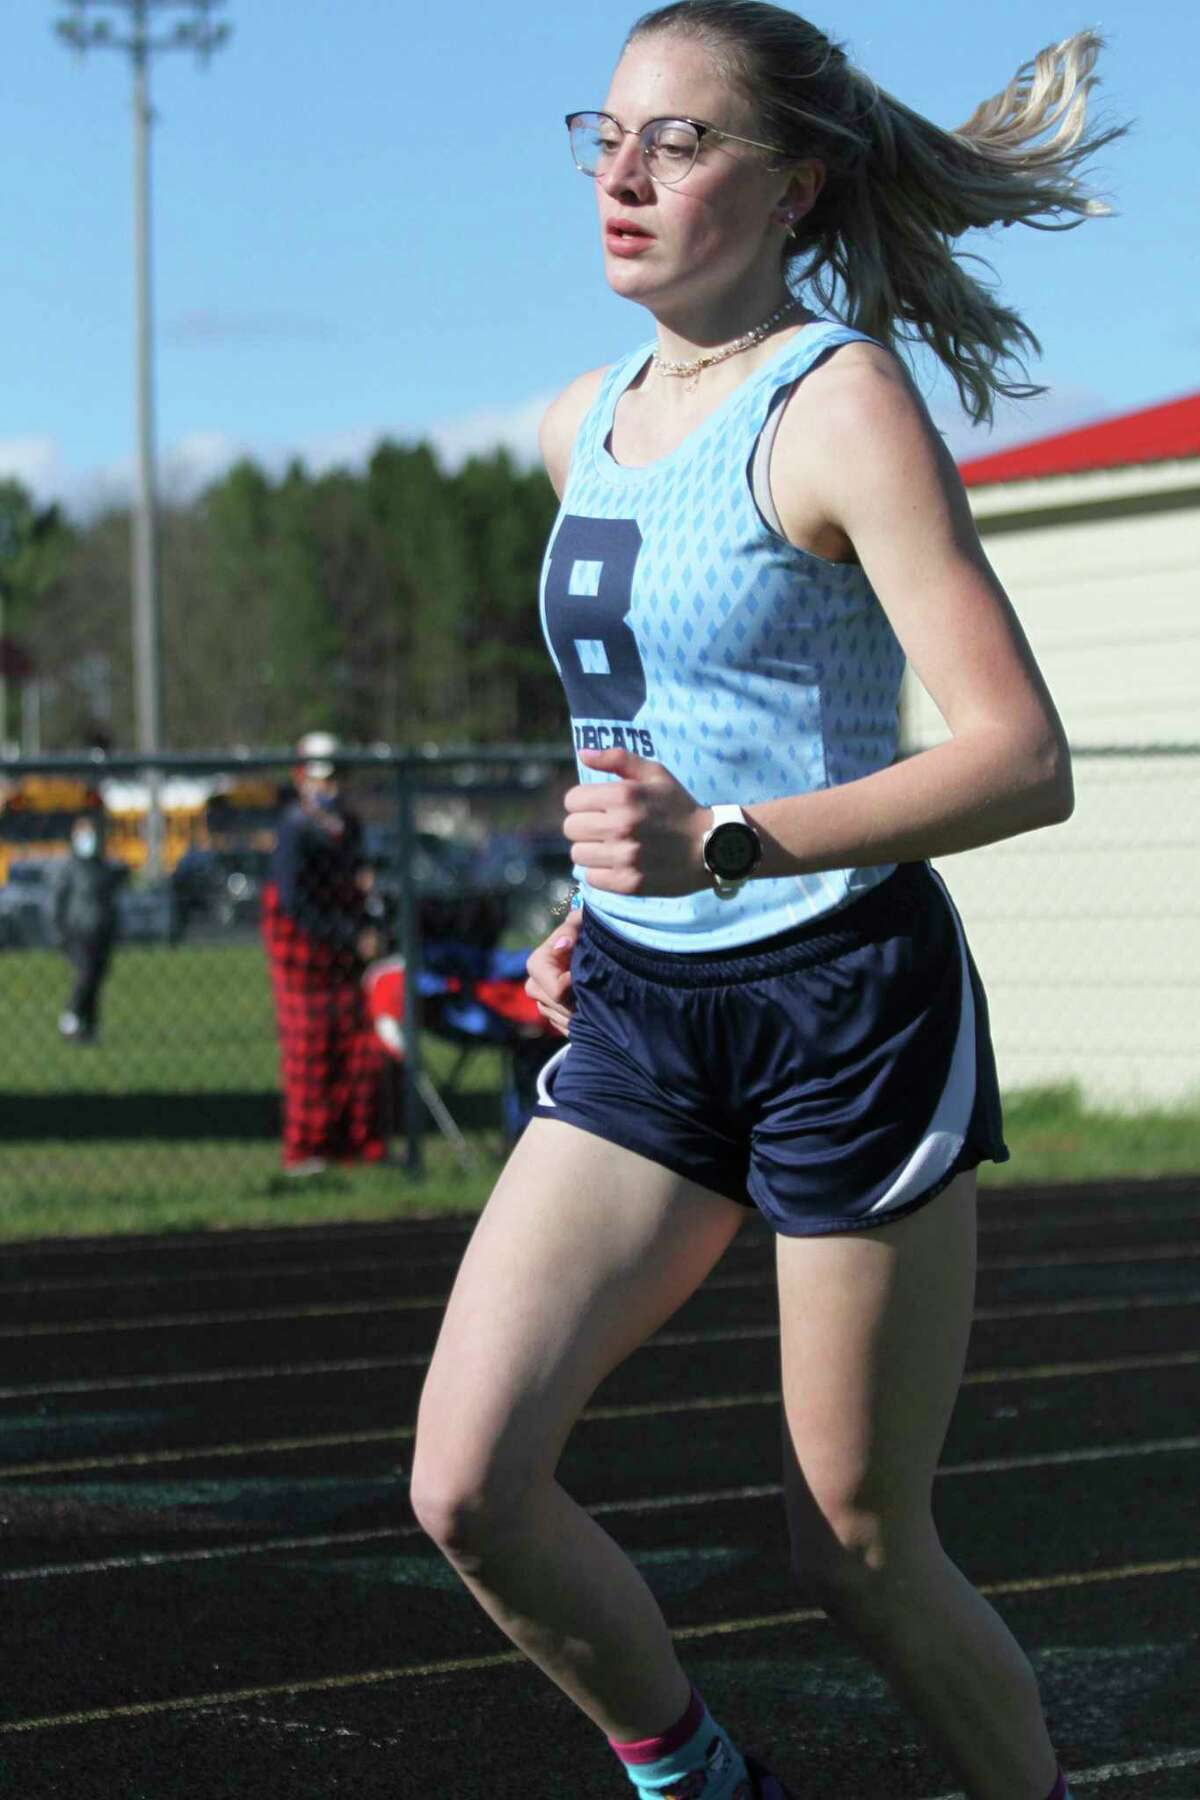 Brethren senior Alexis Tracy earned All-State honors with a seventh-place finish in the 3,200-meter run on Saturday at the Division 4 state finals in Hudsonville. (News Advocate file photo)